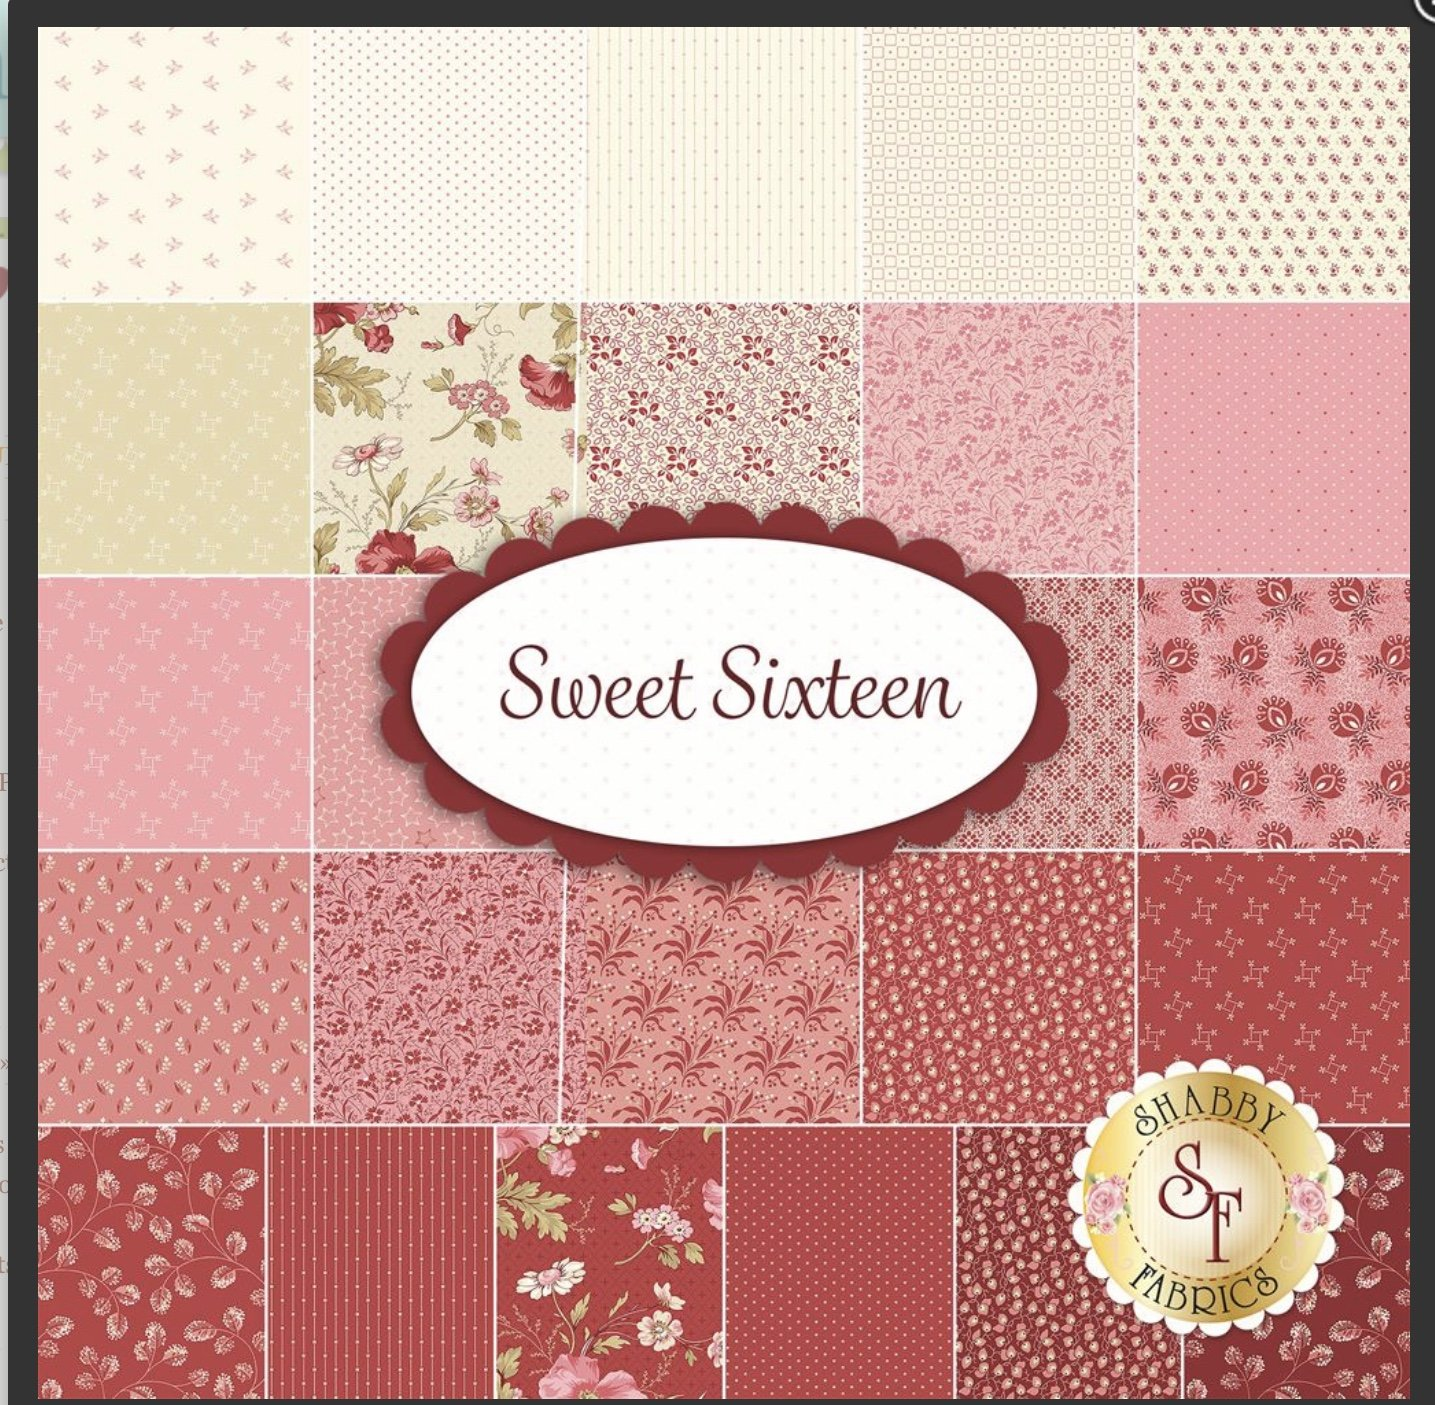 Sweet Sixteen 10 inch squares (42 Pieces) - Laundry Basket Quilts - Andover Fabrics